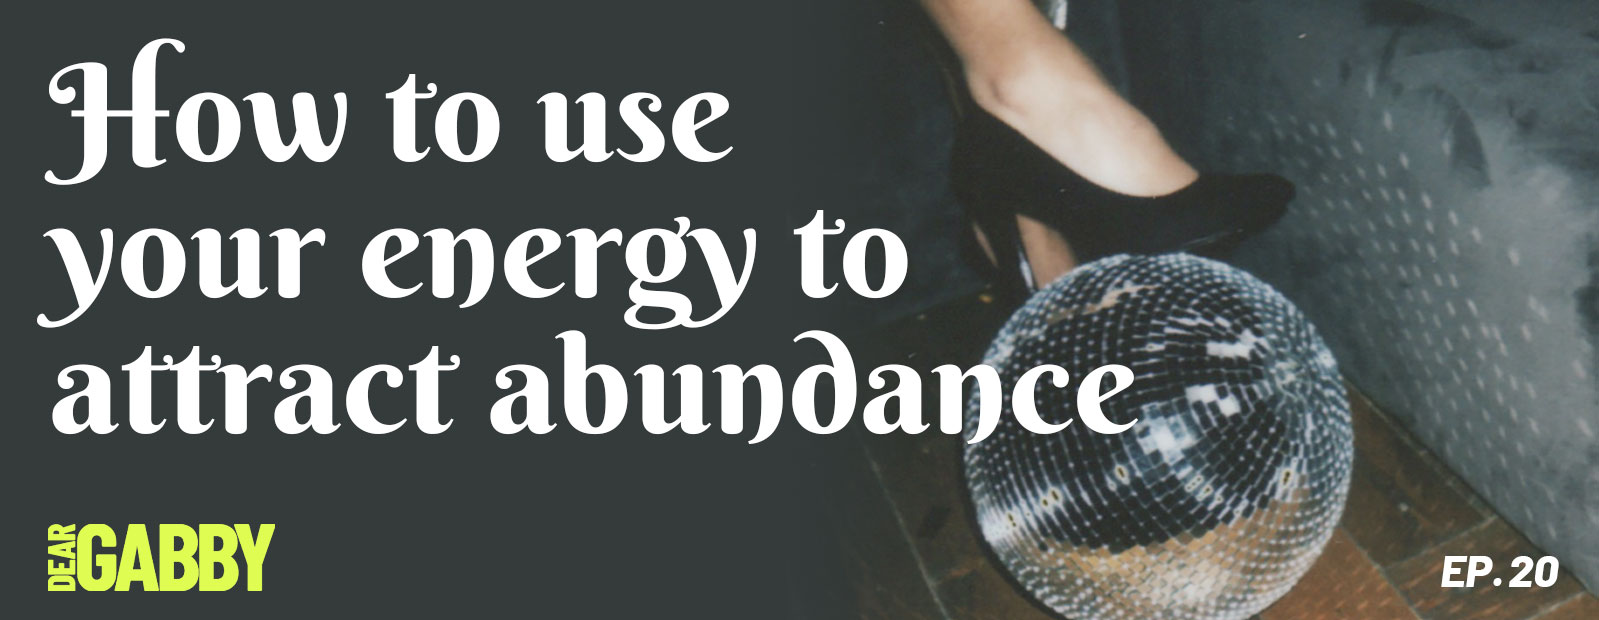 How to Use Your Energy to Attract Abundance